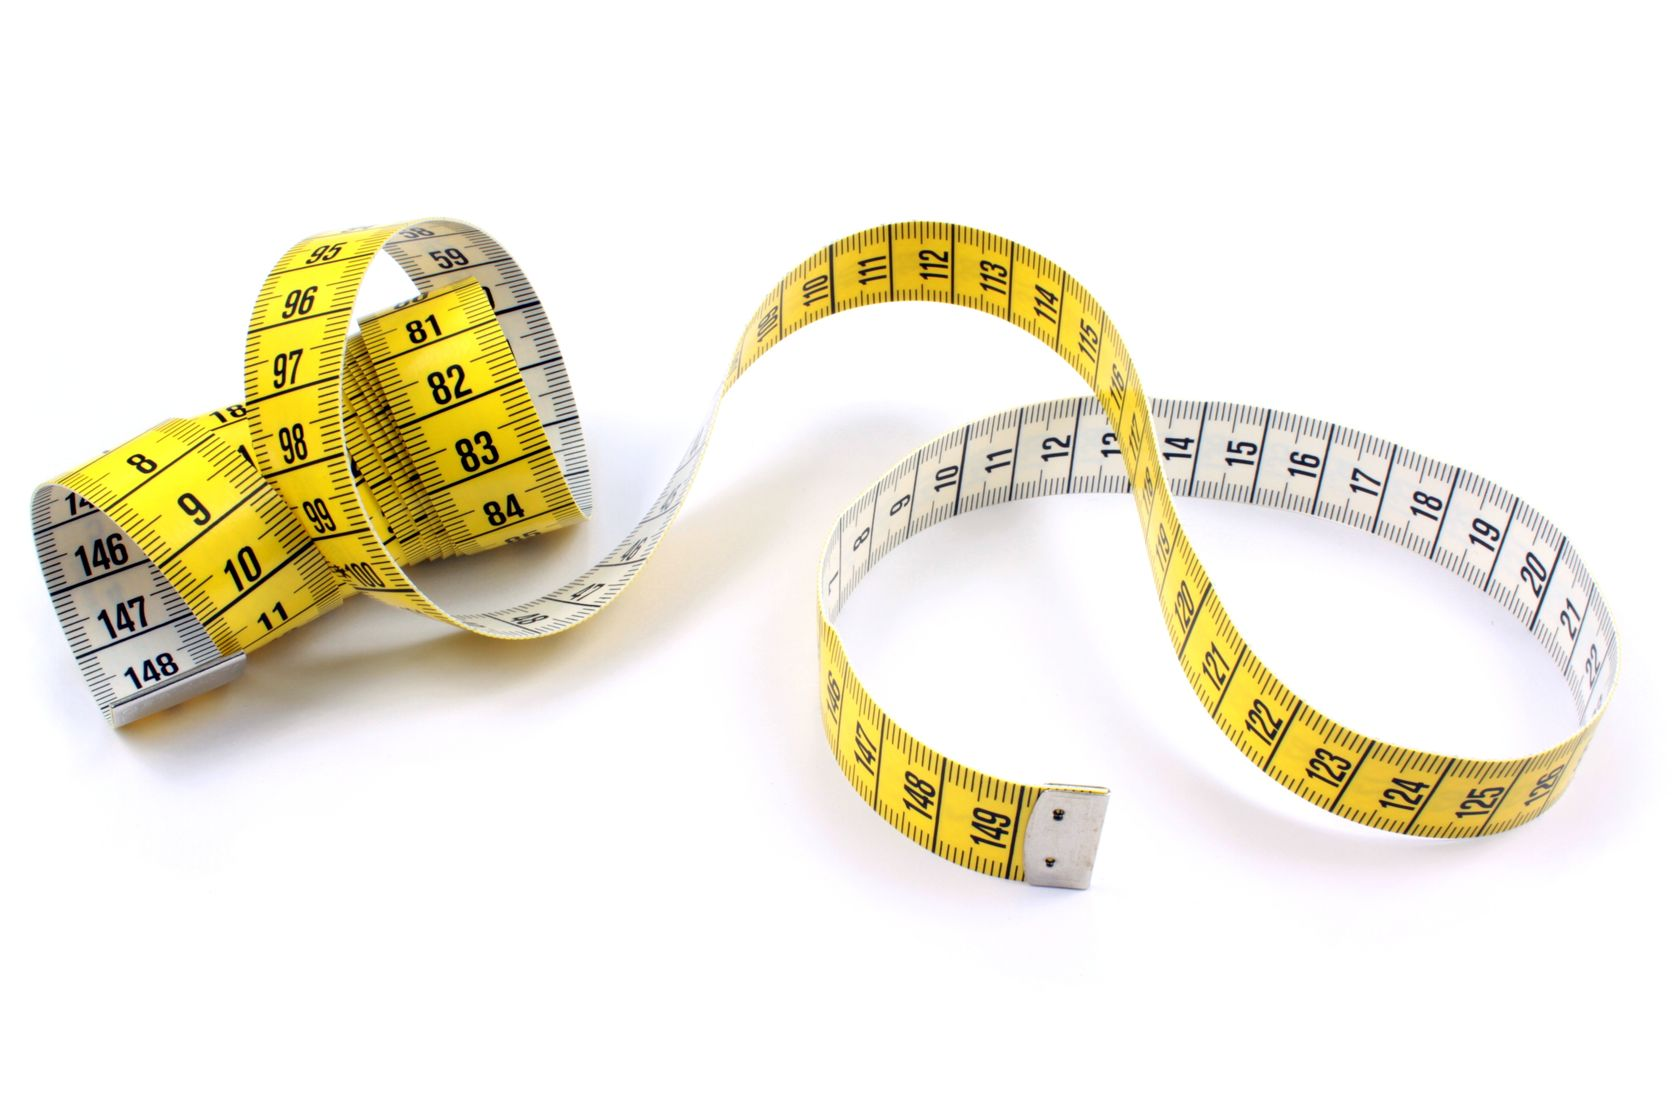 gymnema improves weight, BMI and cholesterol in metabolic syndrome